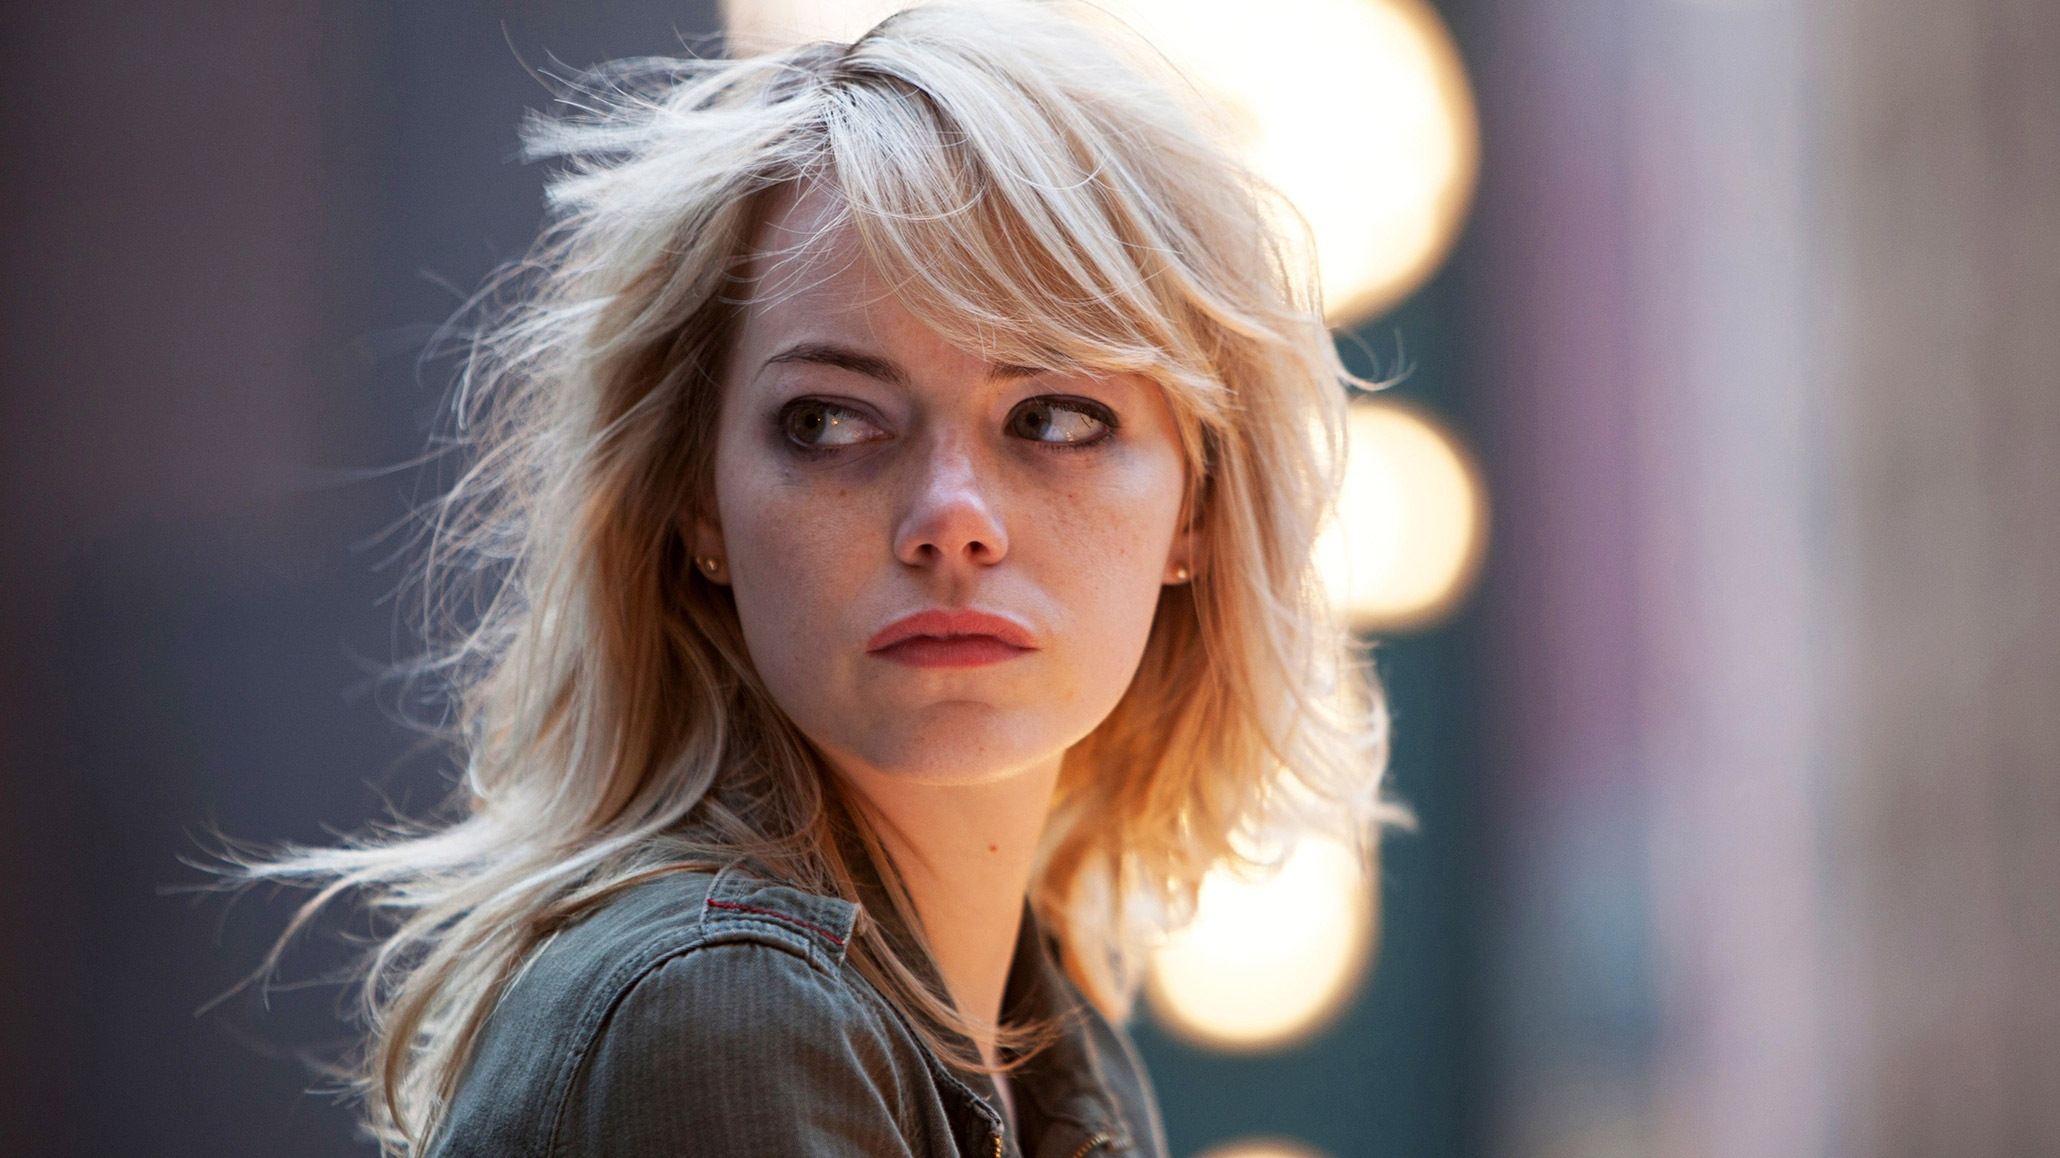 3d Stone Wallpaper For Walls Emma Stone Latest Hd Celebrities 4k Wallpapers Images